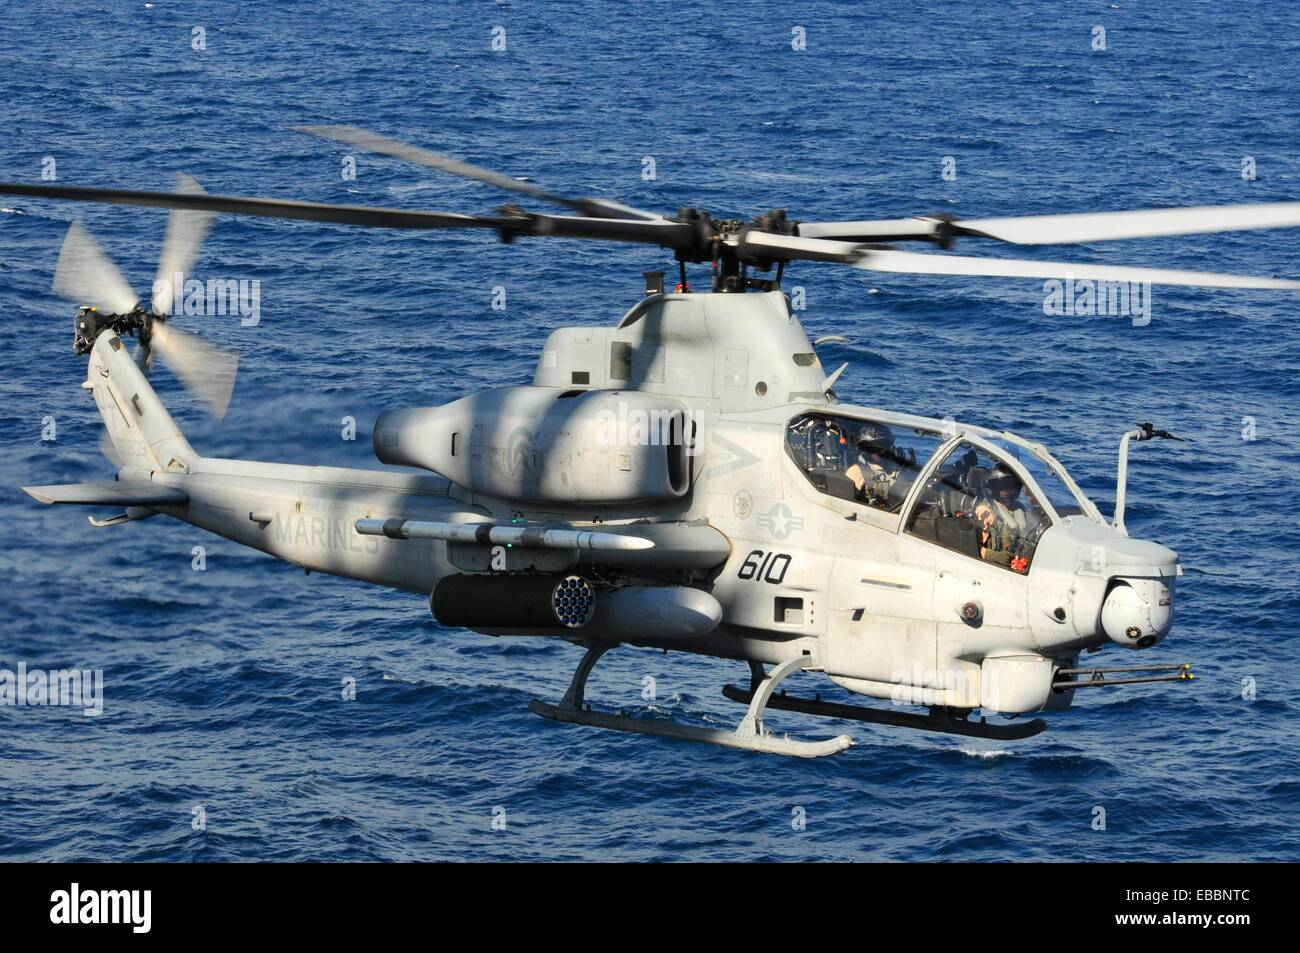 100802-N-3852A-366 ATLANTIC OCEAN Aug  2, 2010 An AH-1Z Cobra helicopter assigned to Rotary Wing Aircraft Test Squadron - Stock Image